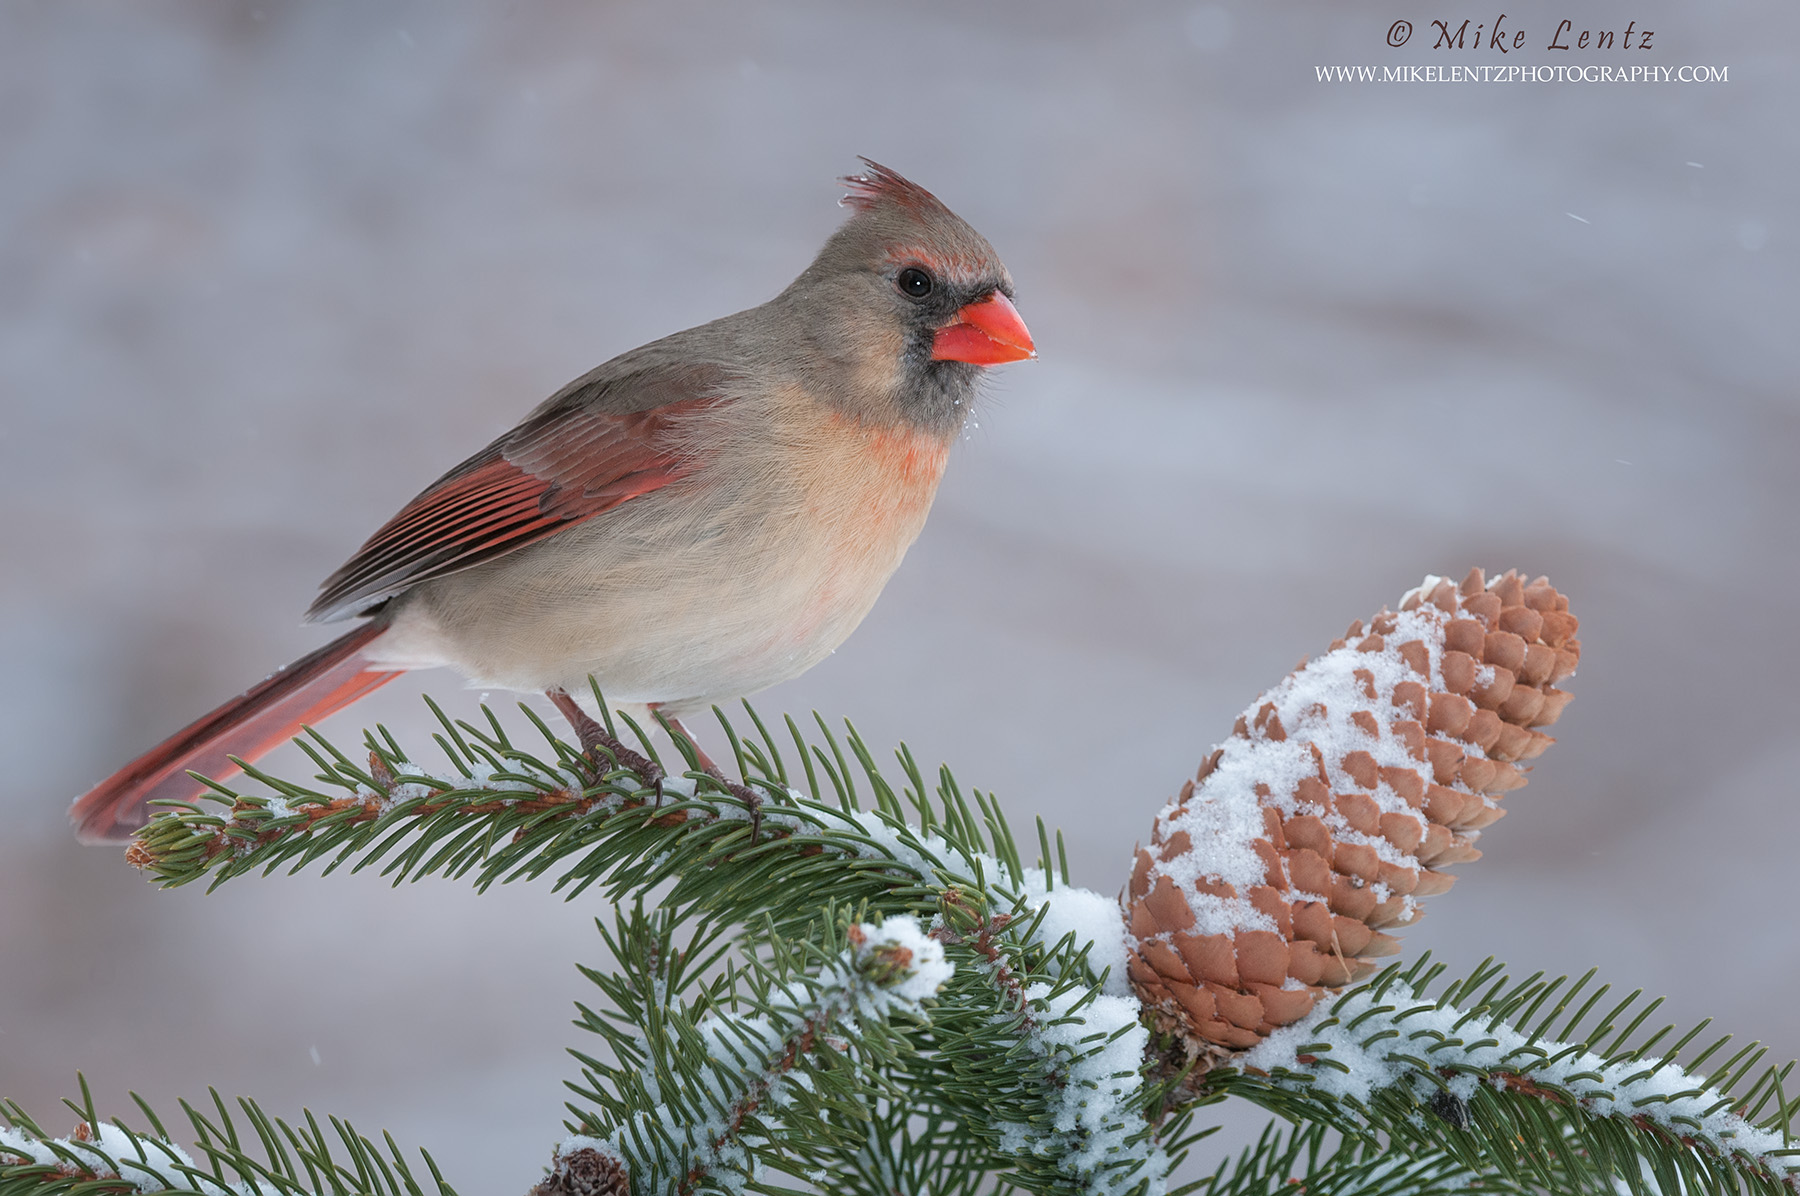 Cardinal female on snowy pine tree